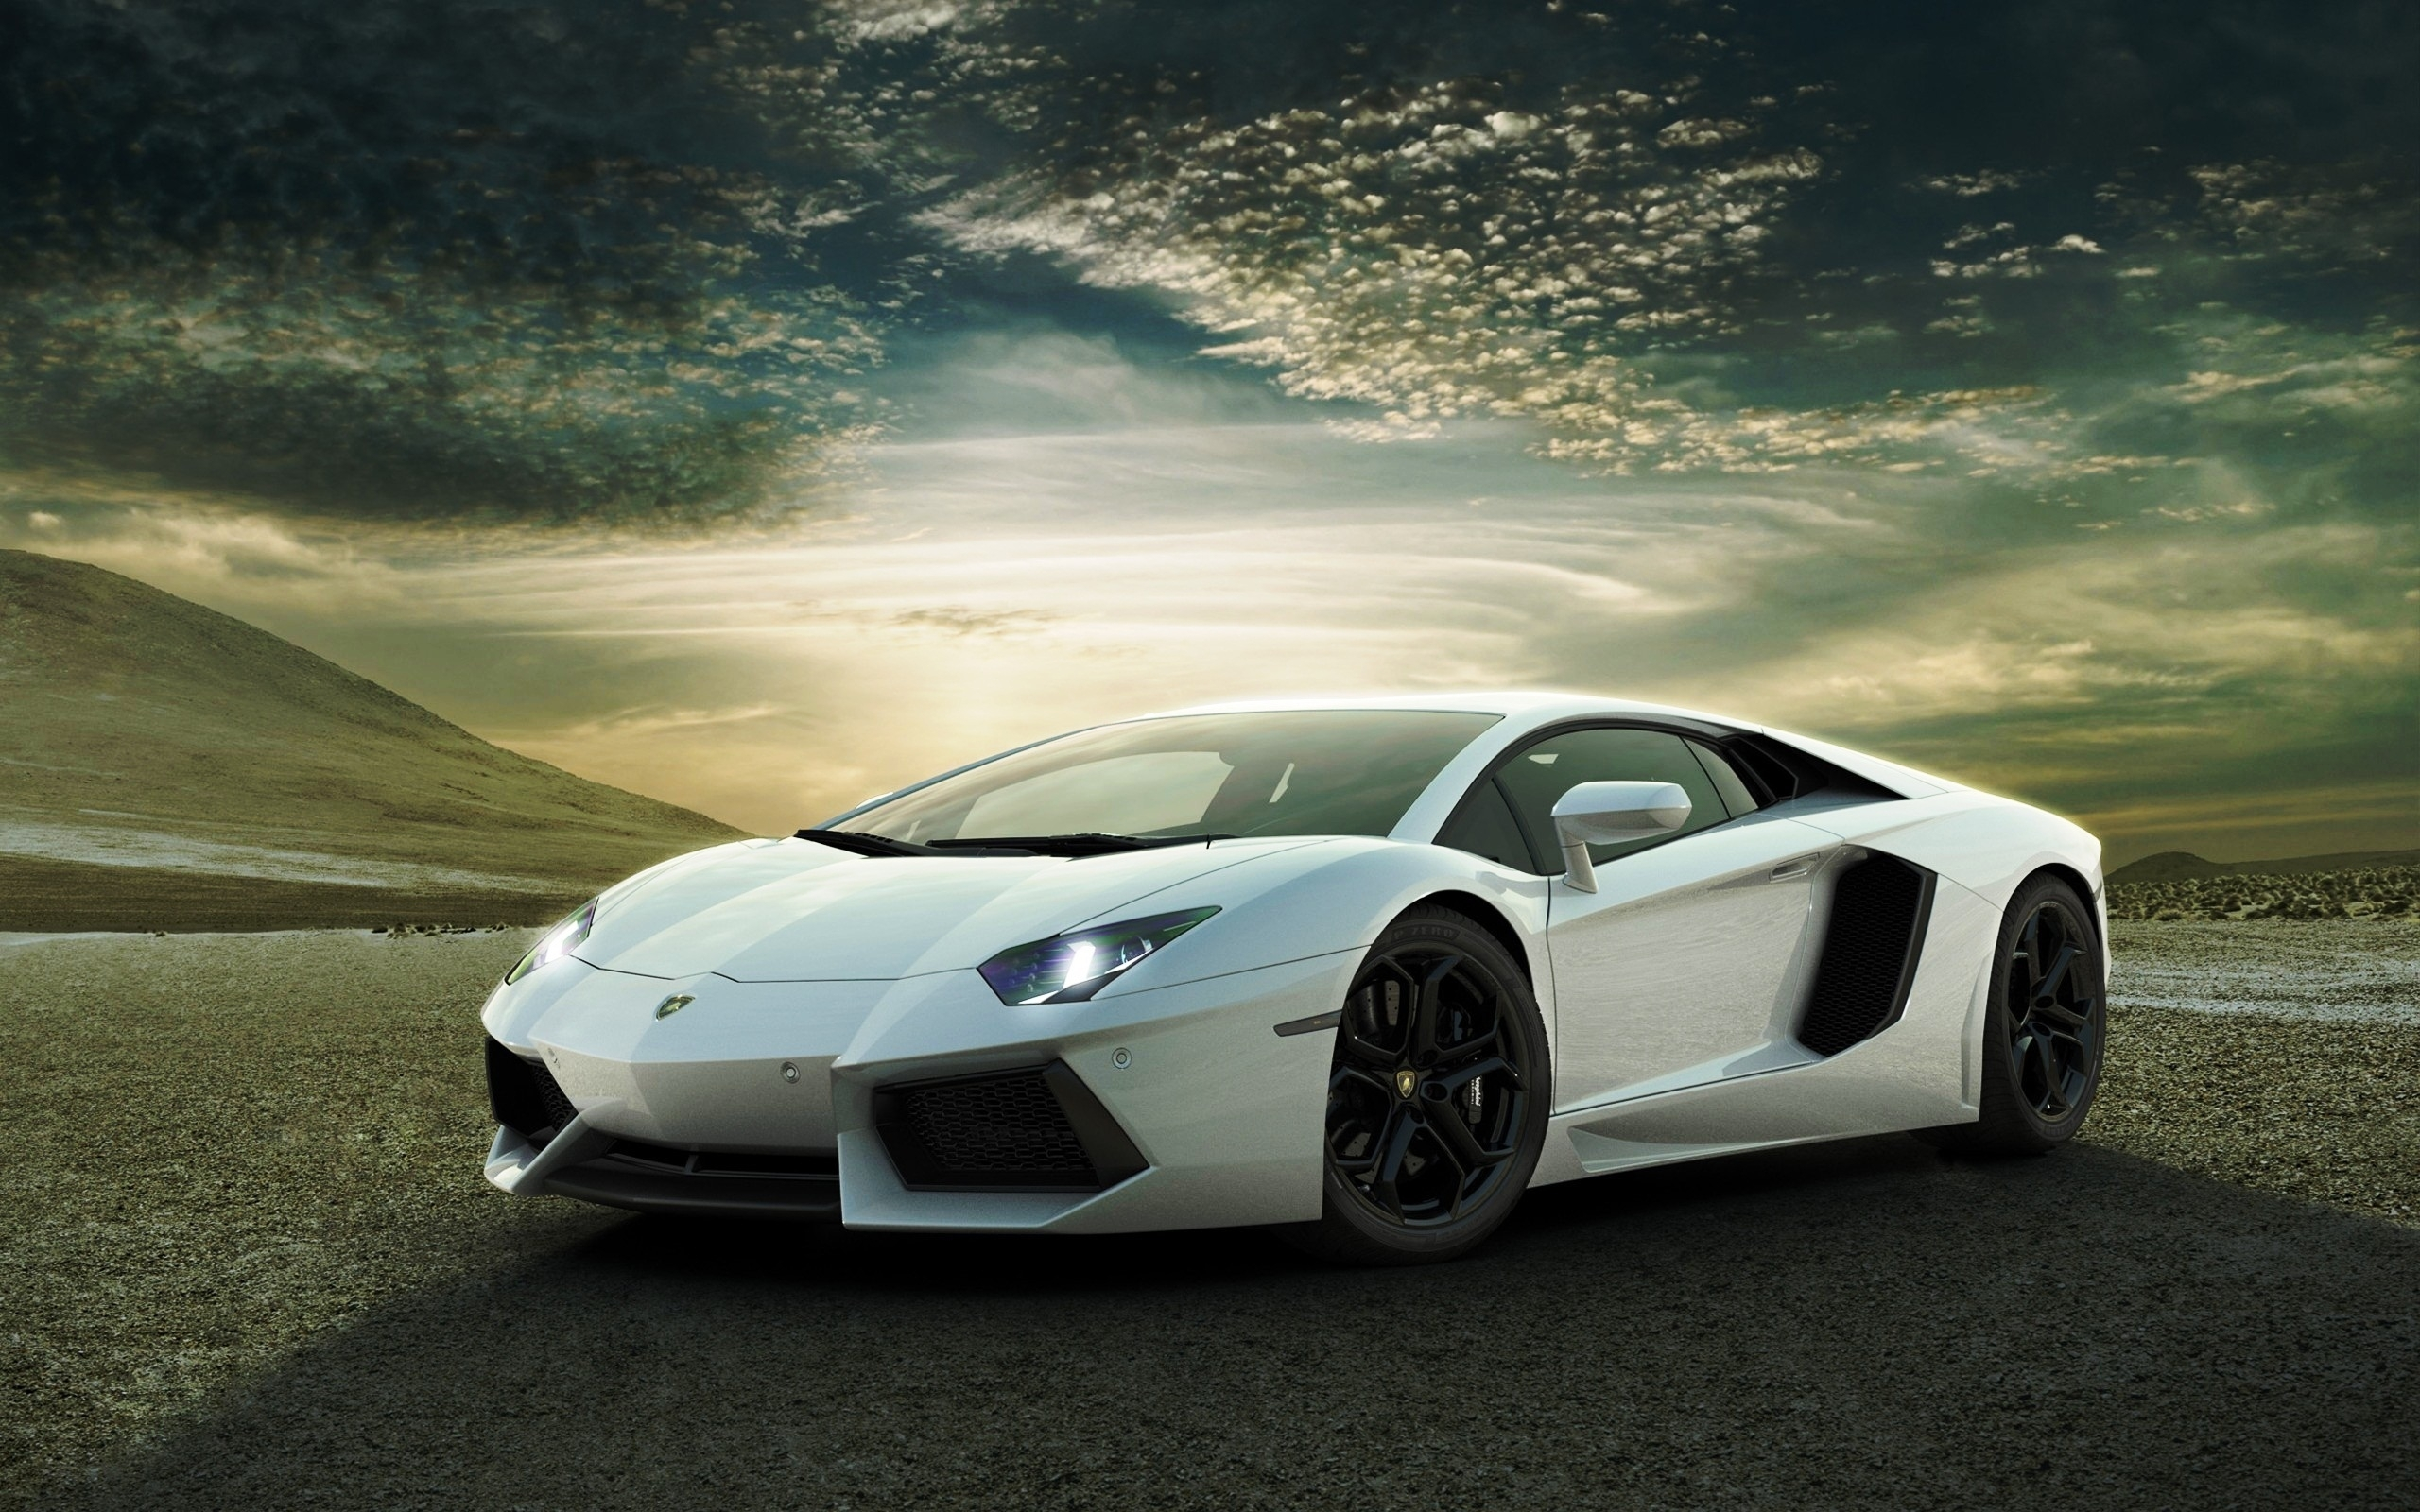 white lamborghini aventador wallpapers | hd wallpapers | id #9722